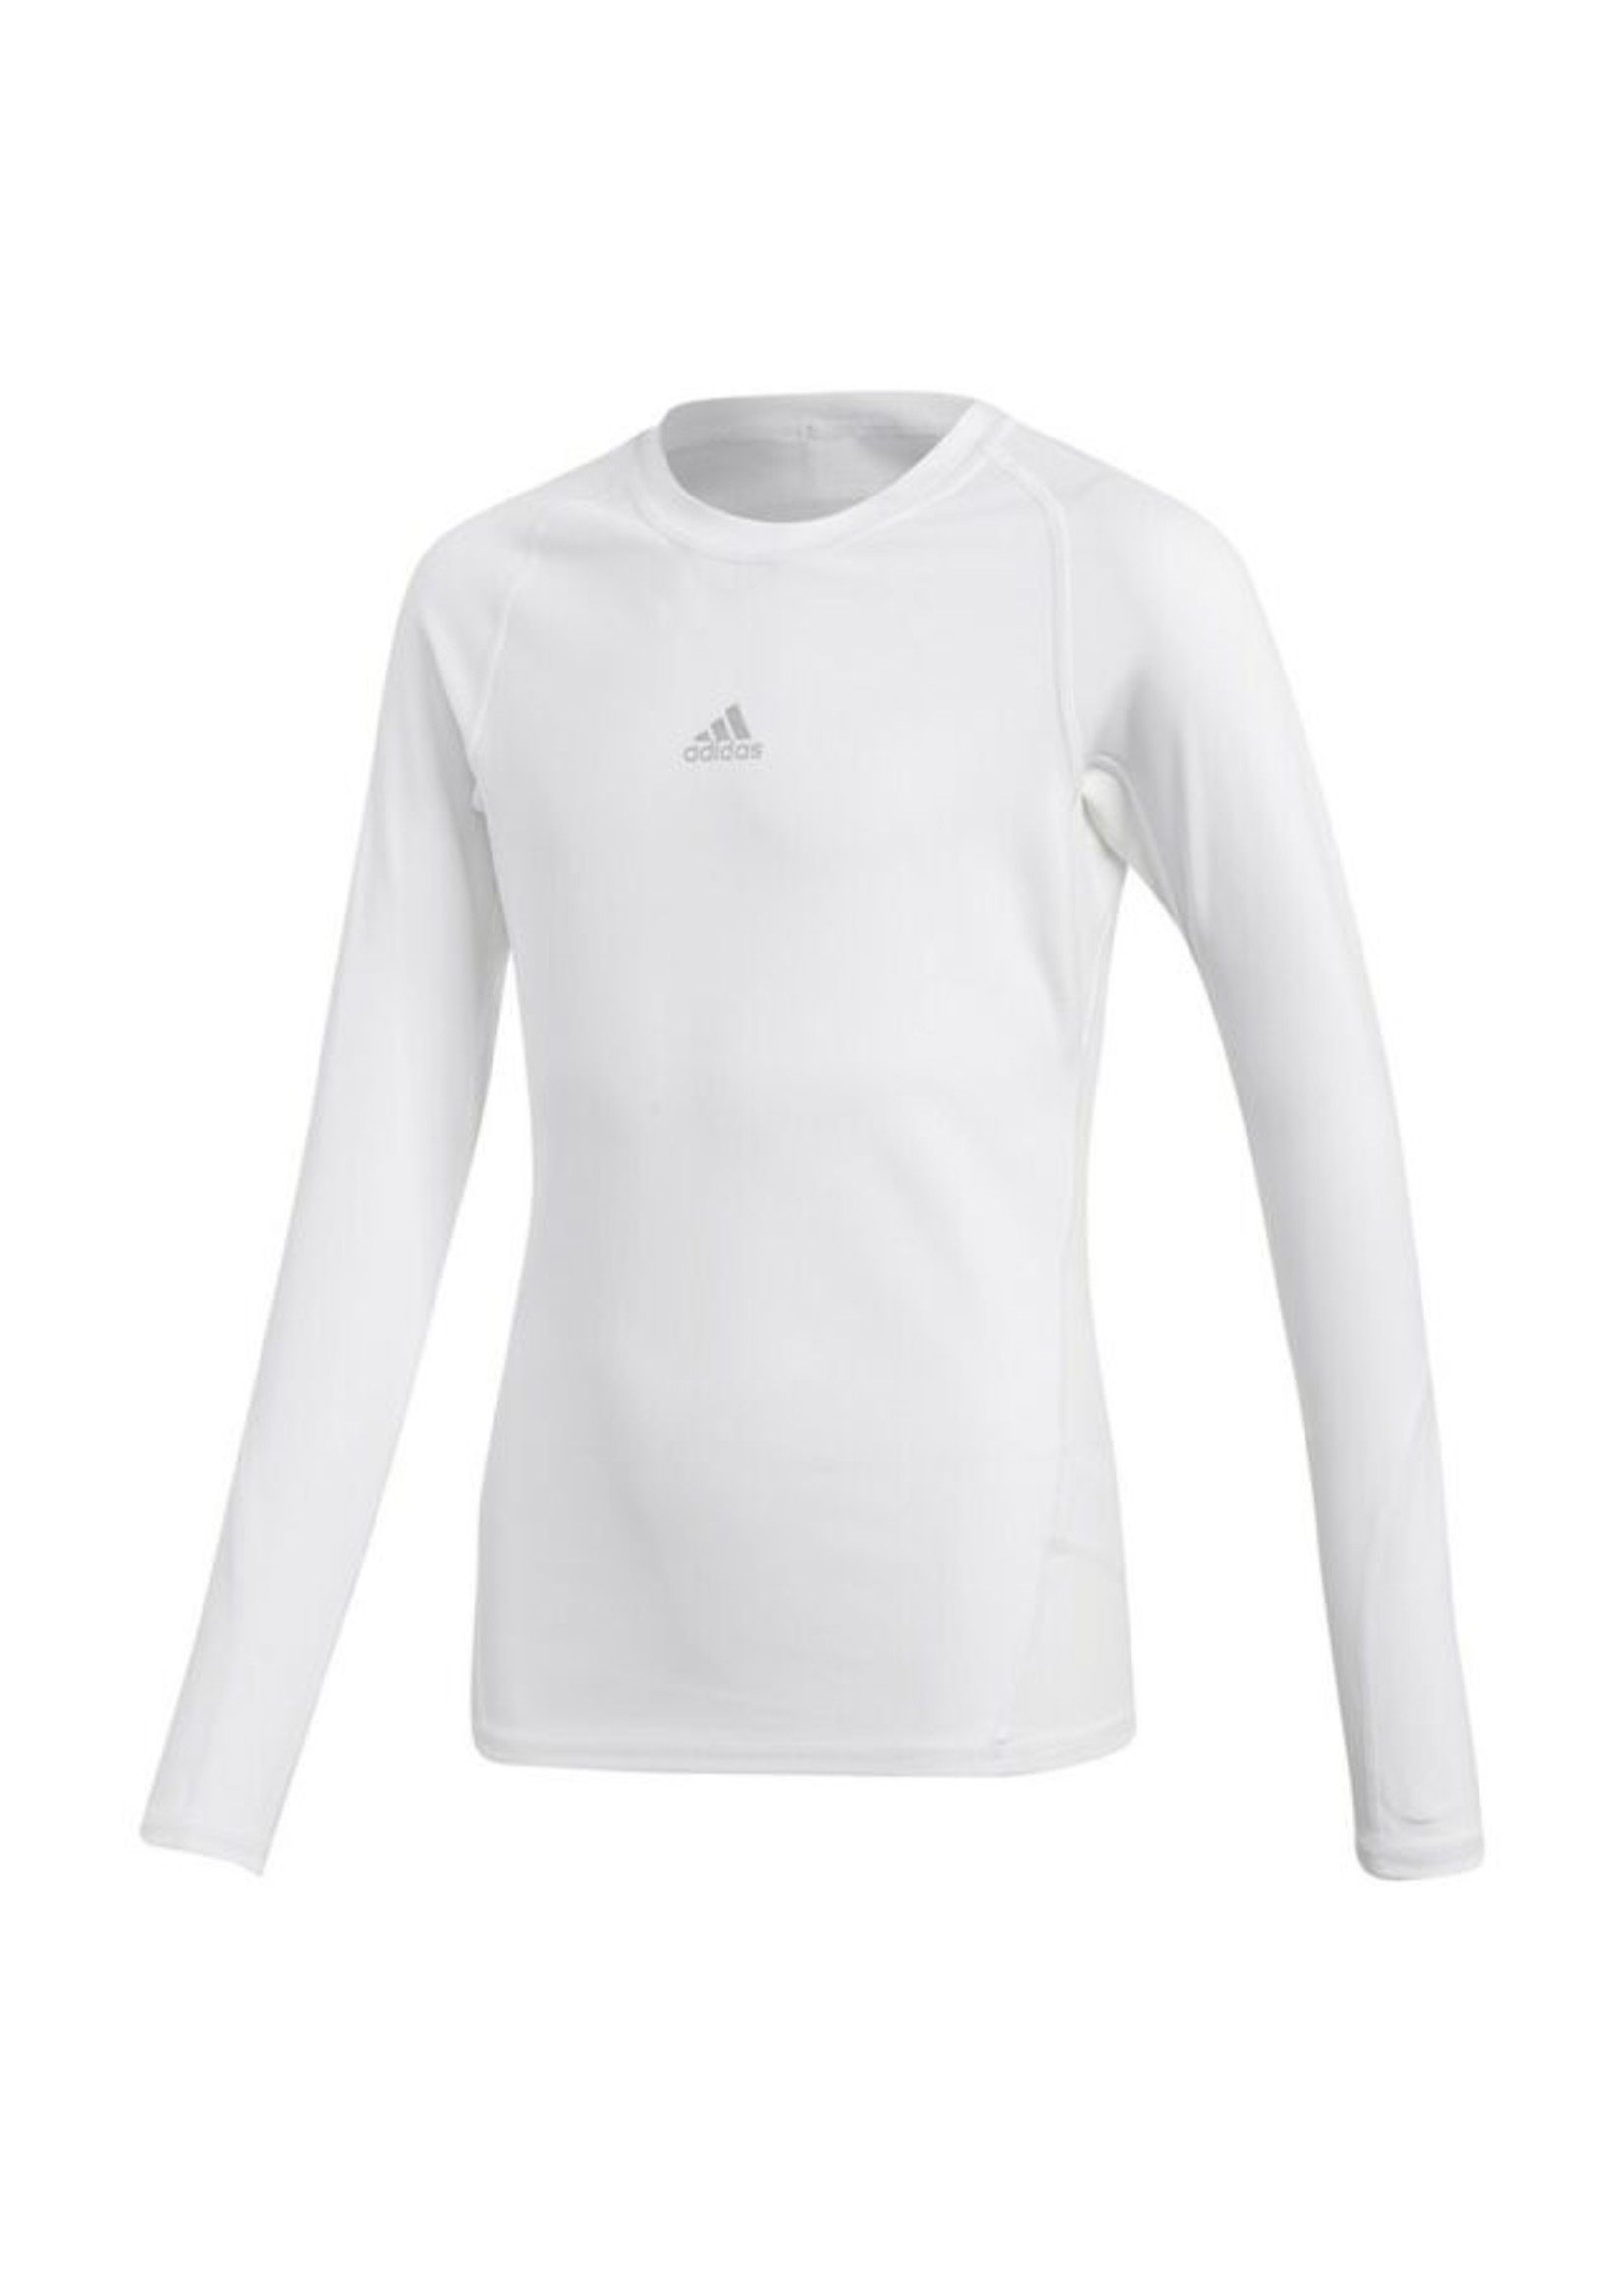 Adidas Compression White Long Sleeve Youth